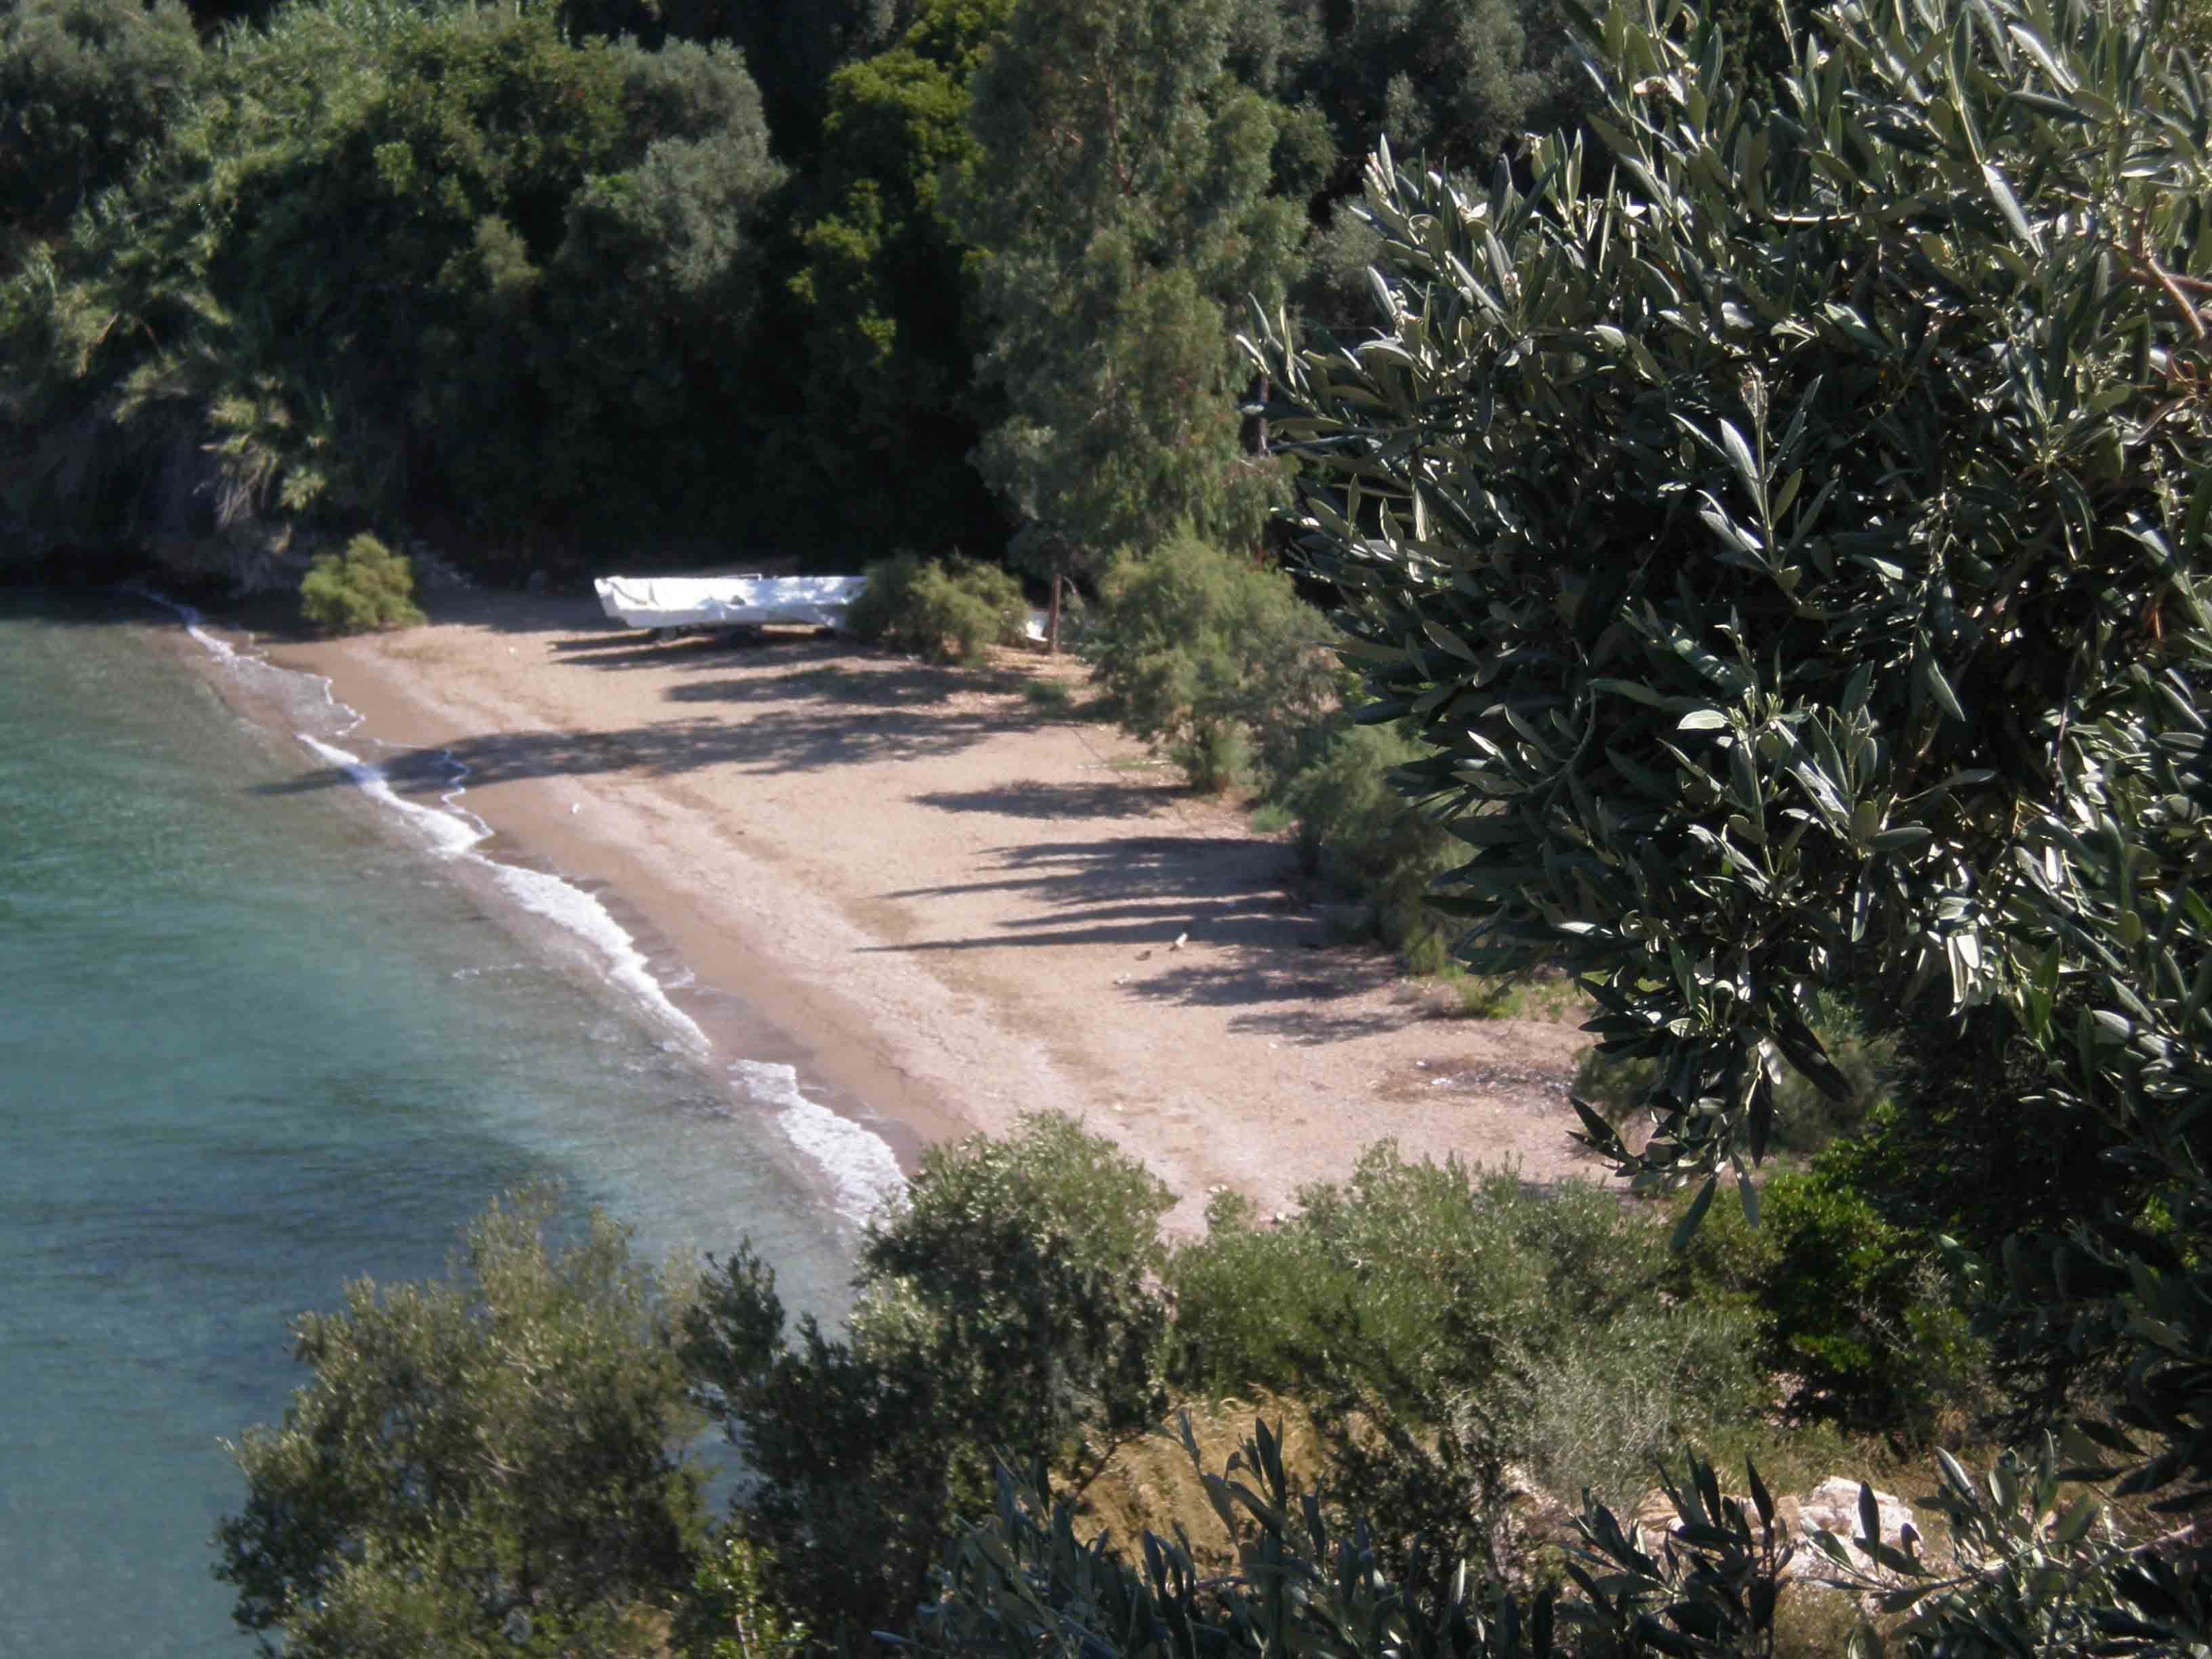 The beach below the house